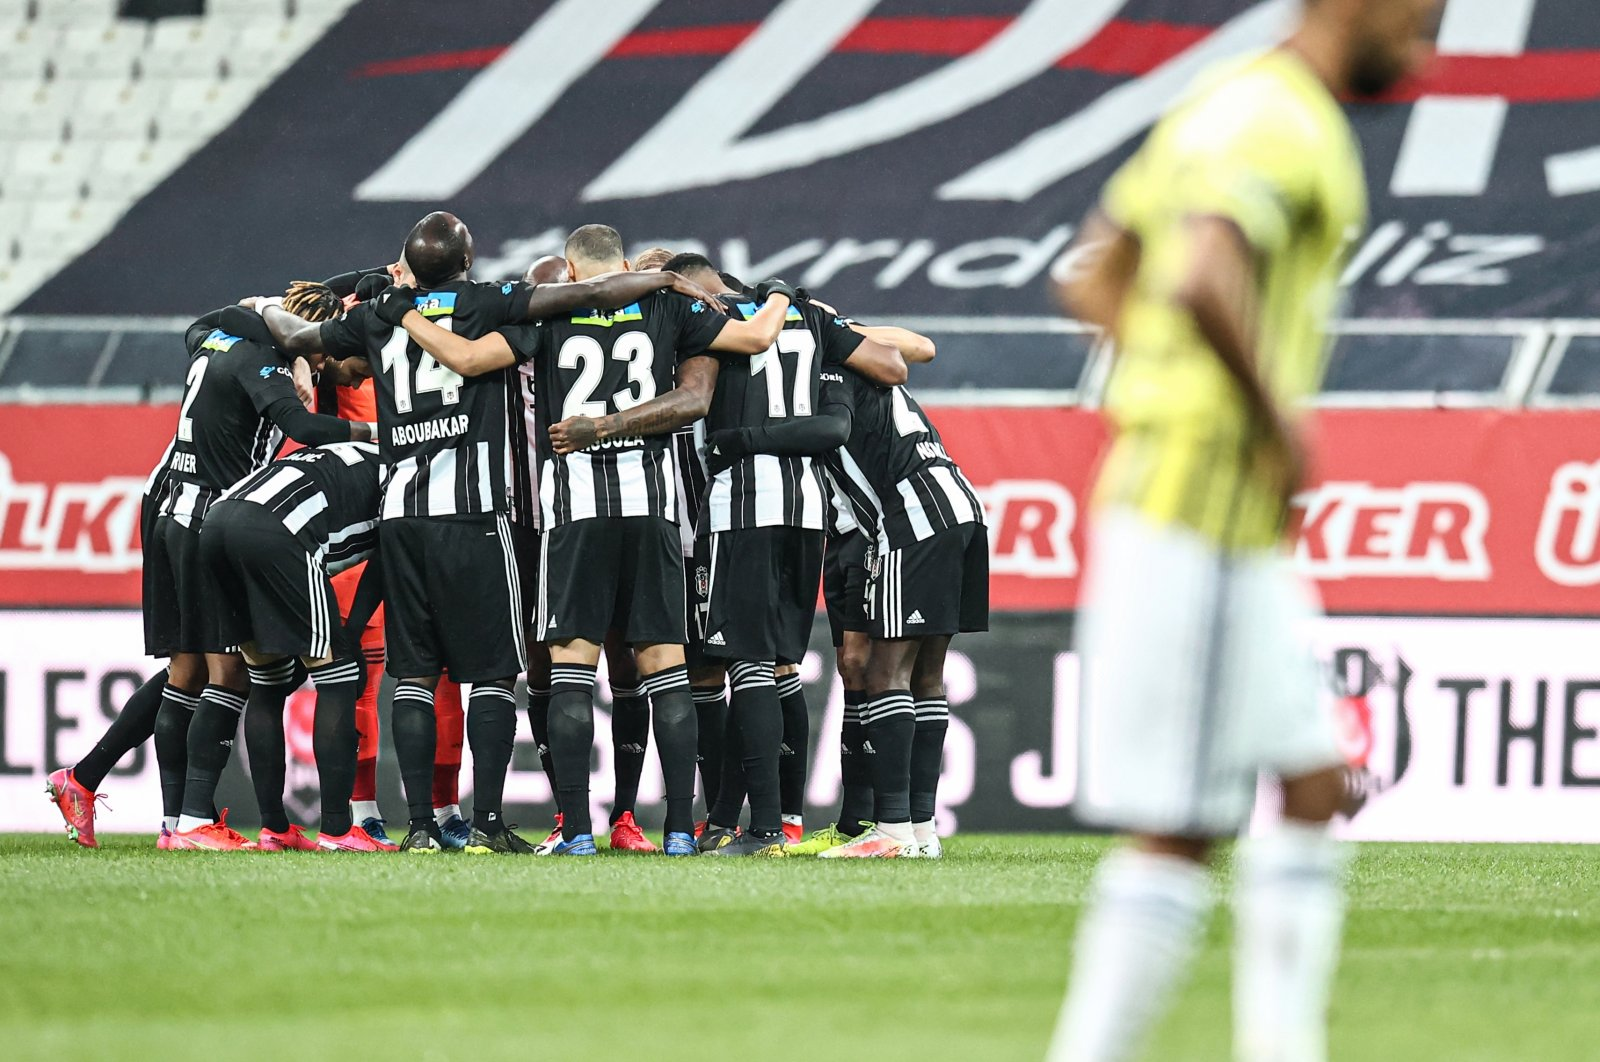 Beşiktaş players gather during the Turkish Süper Lig Week 31 match against city rival Fenerbahçe at the Vodafone Stadium in Istanbul, Turkey, March 21, 2021. (AA Photo)